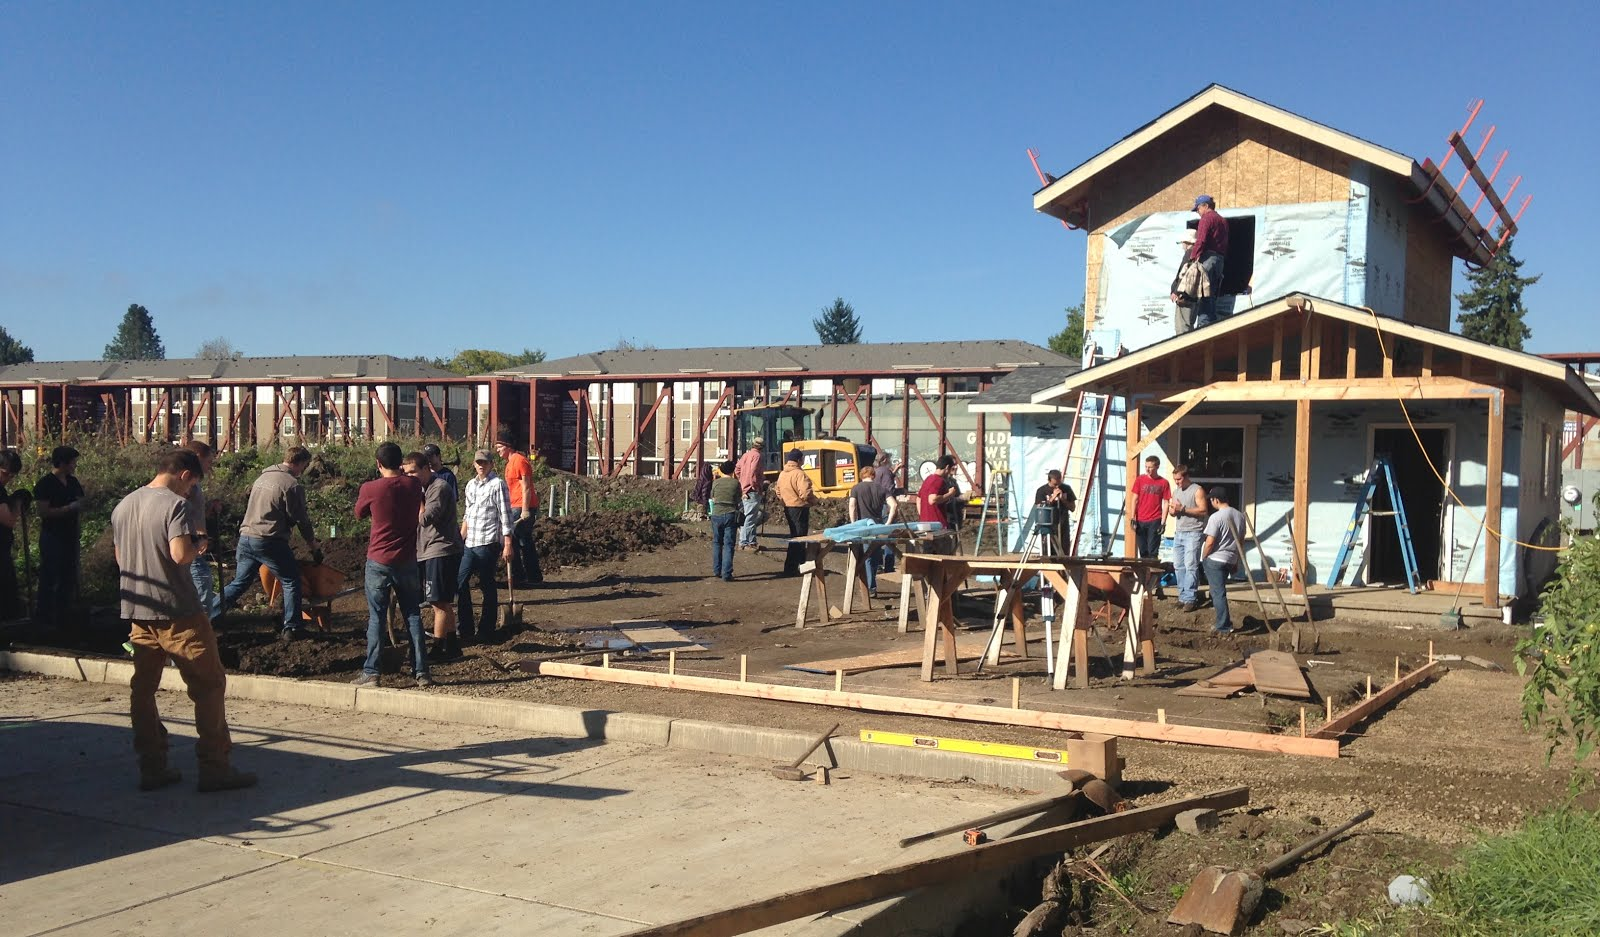 SigEp+FIJI Habitat for Humanity Service Day.JPG